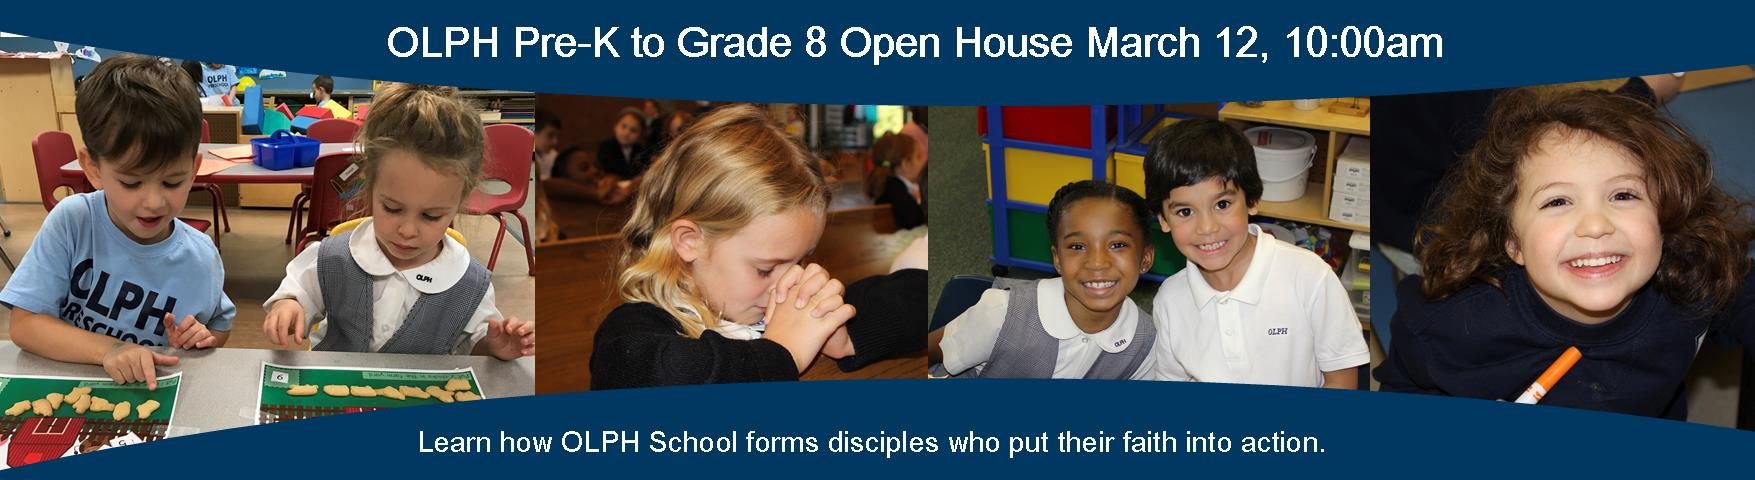 Open-House-March-12-web-slider